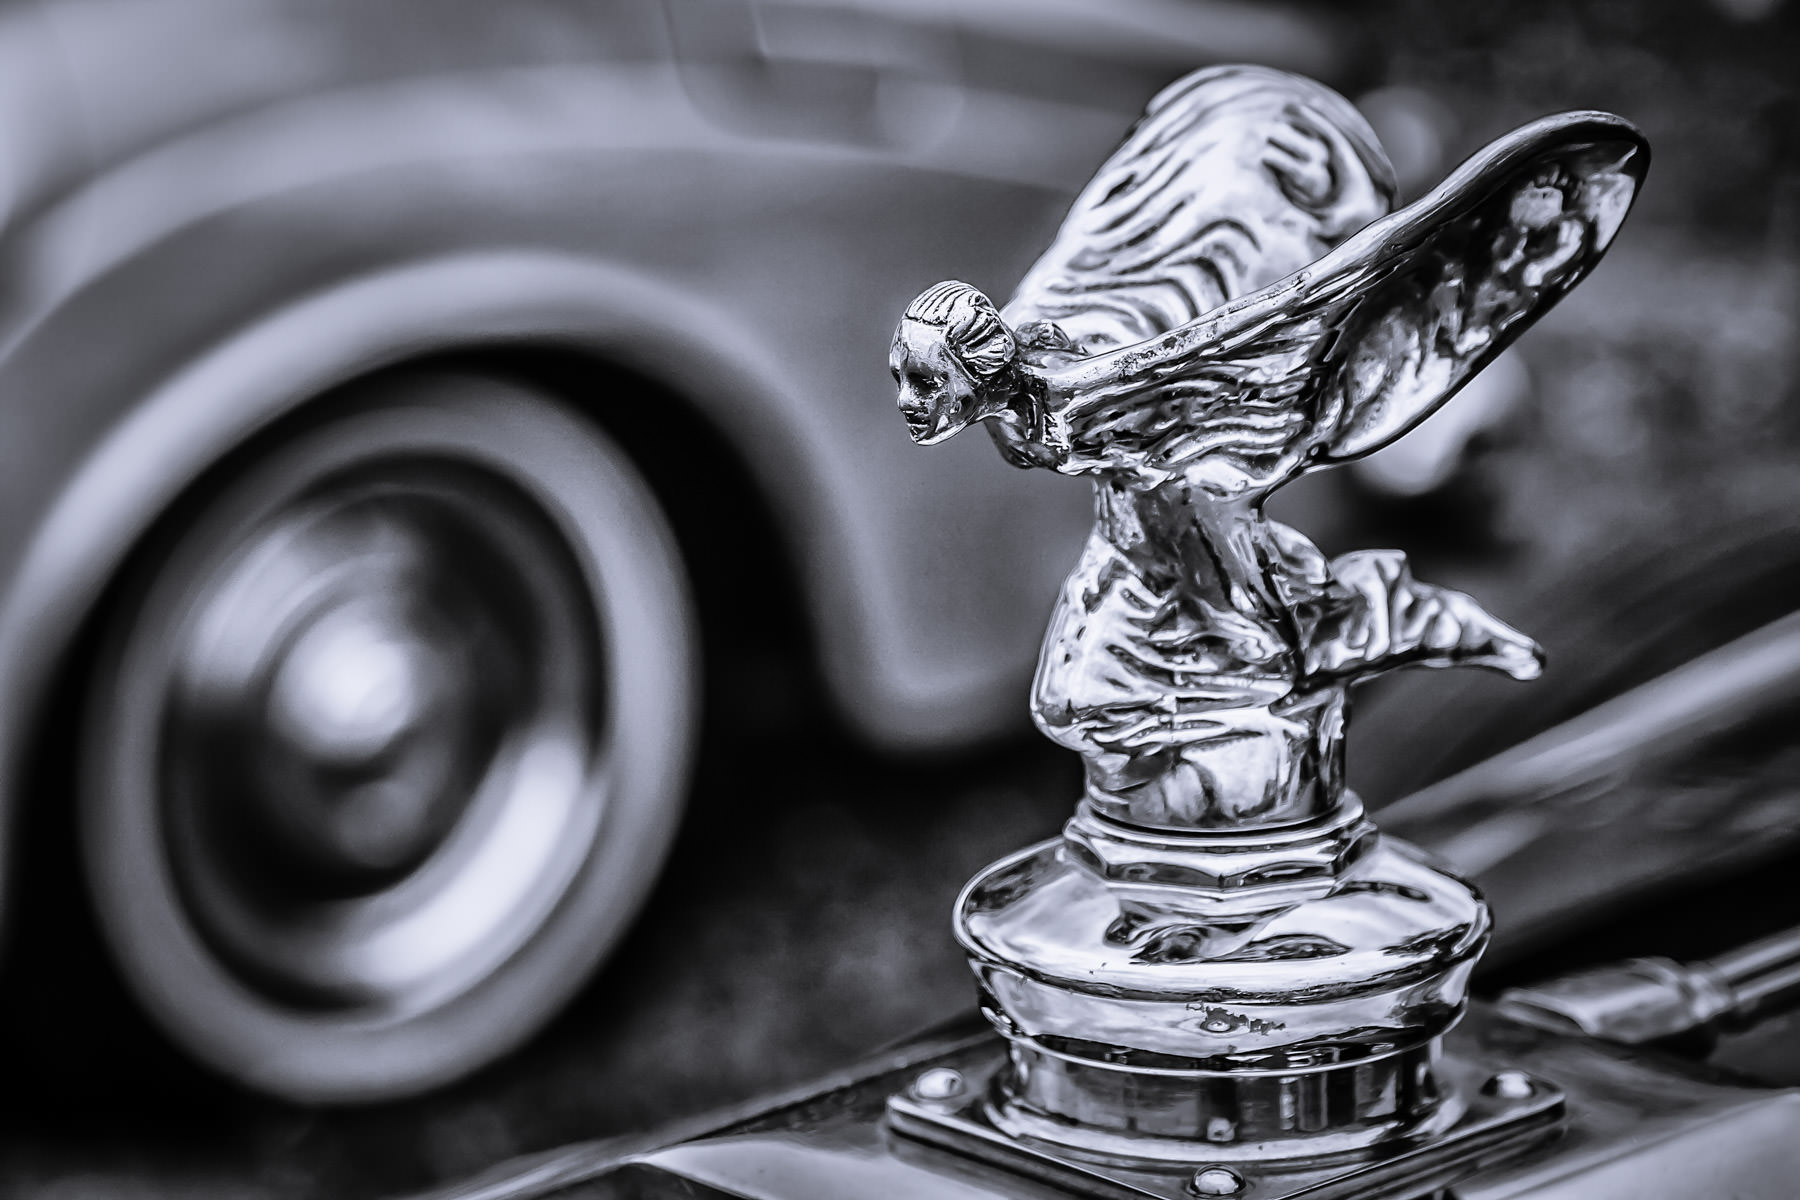 The hood ornament of a 1936 Rolls-Royce at Dallas' All British and European Car Day.